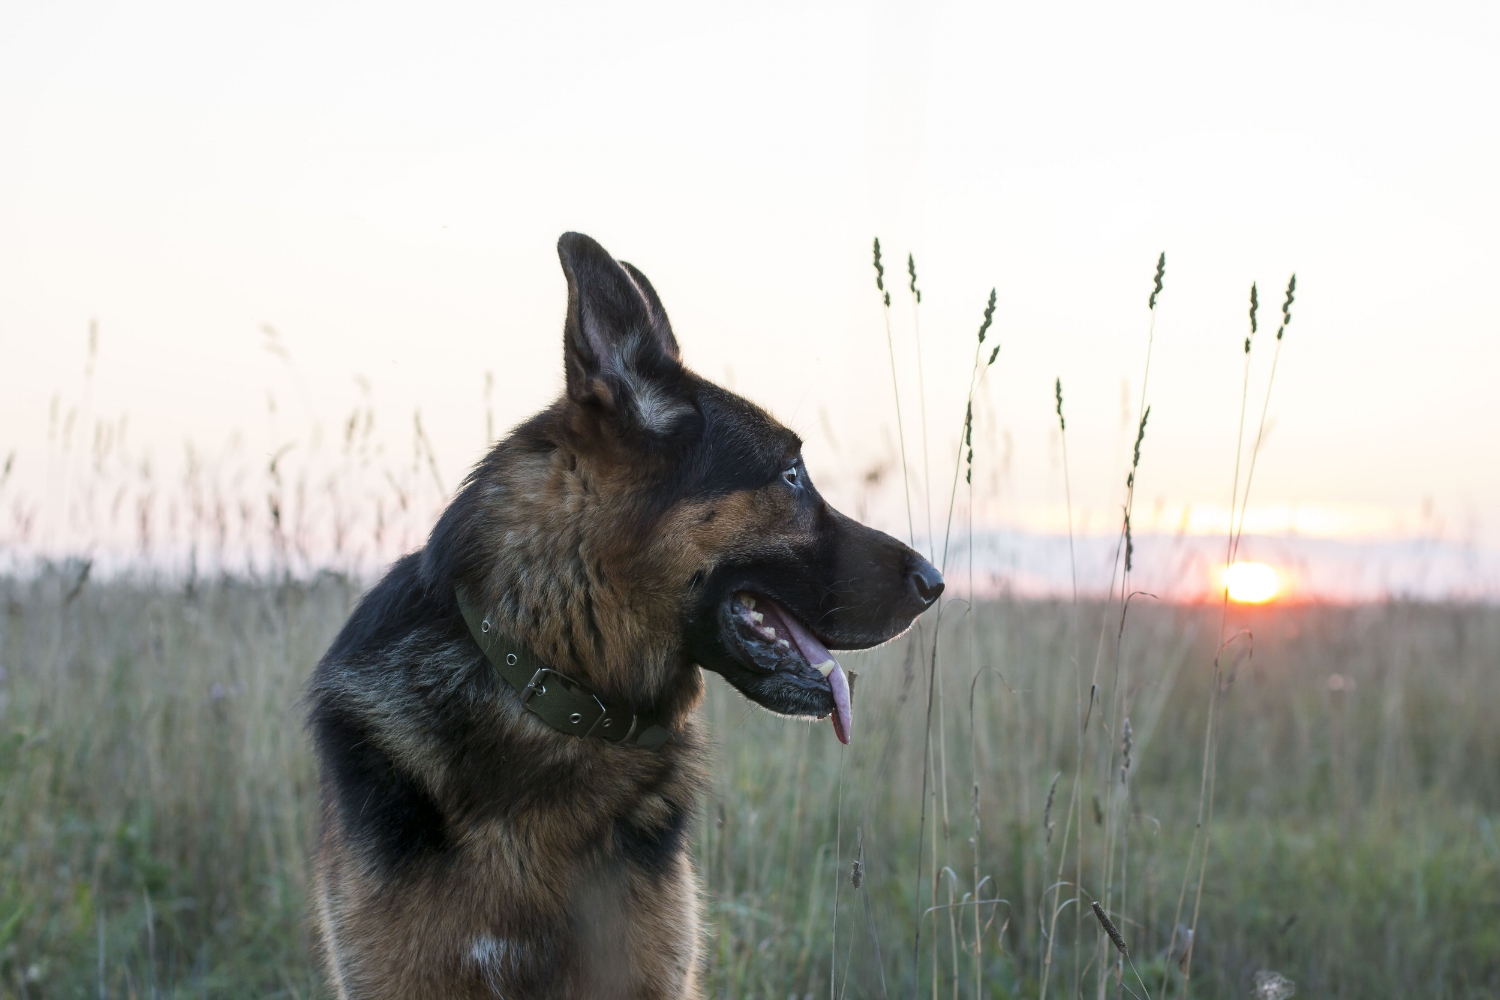 Best San Fernando Valley dog training for biting, jumping, chewing, obedience, leash walking, recall, house training, reactivity, guarding, or aggression.